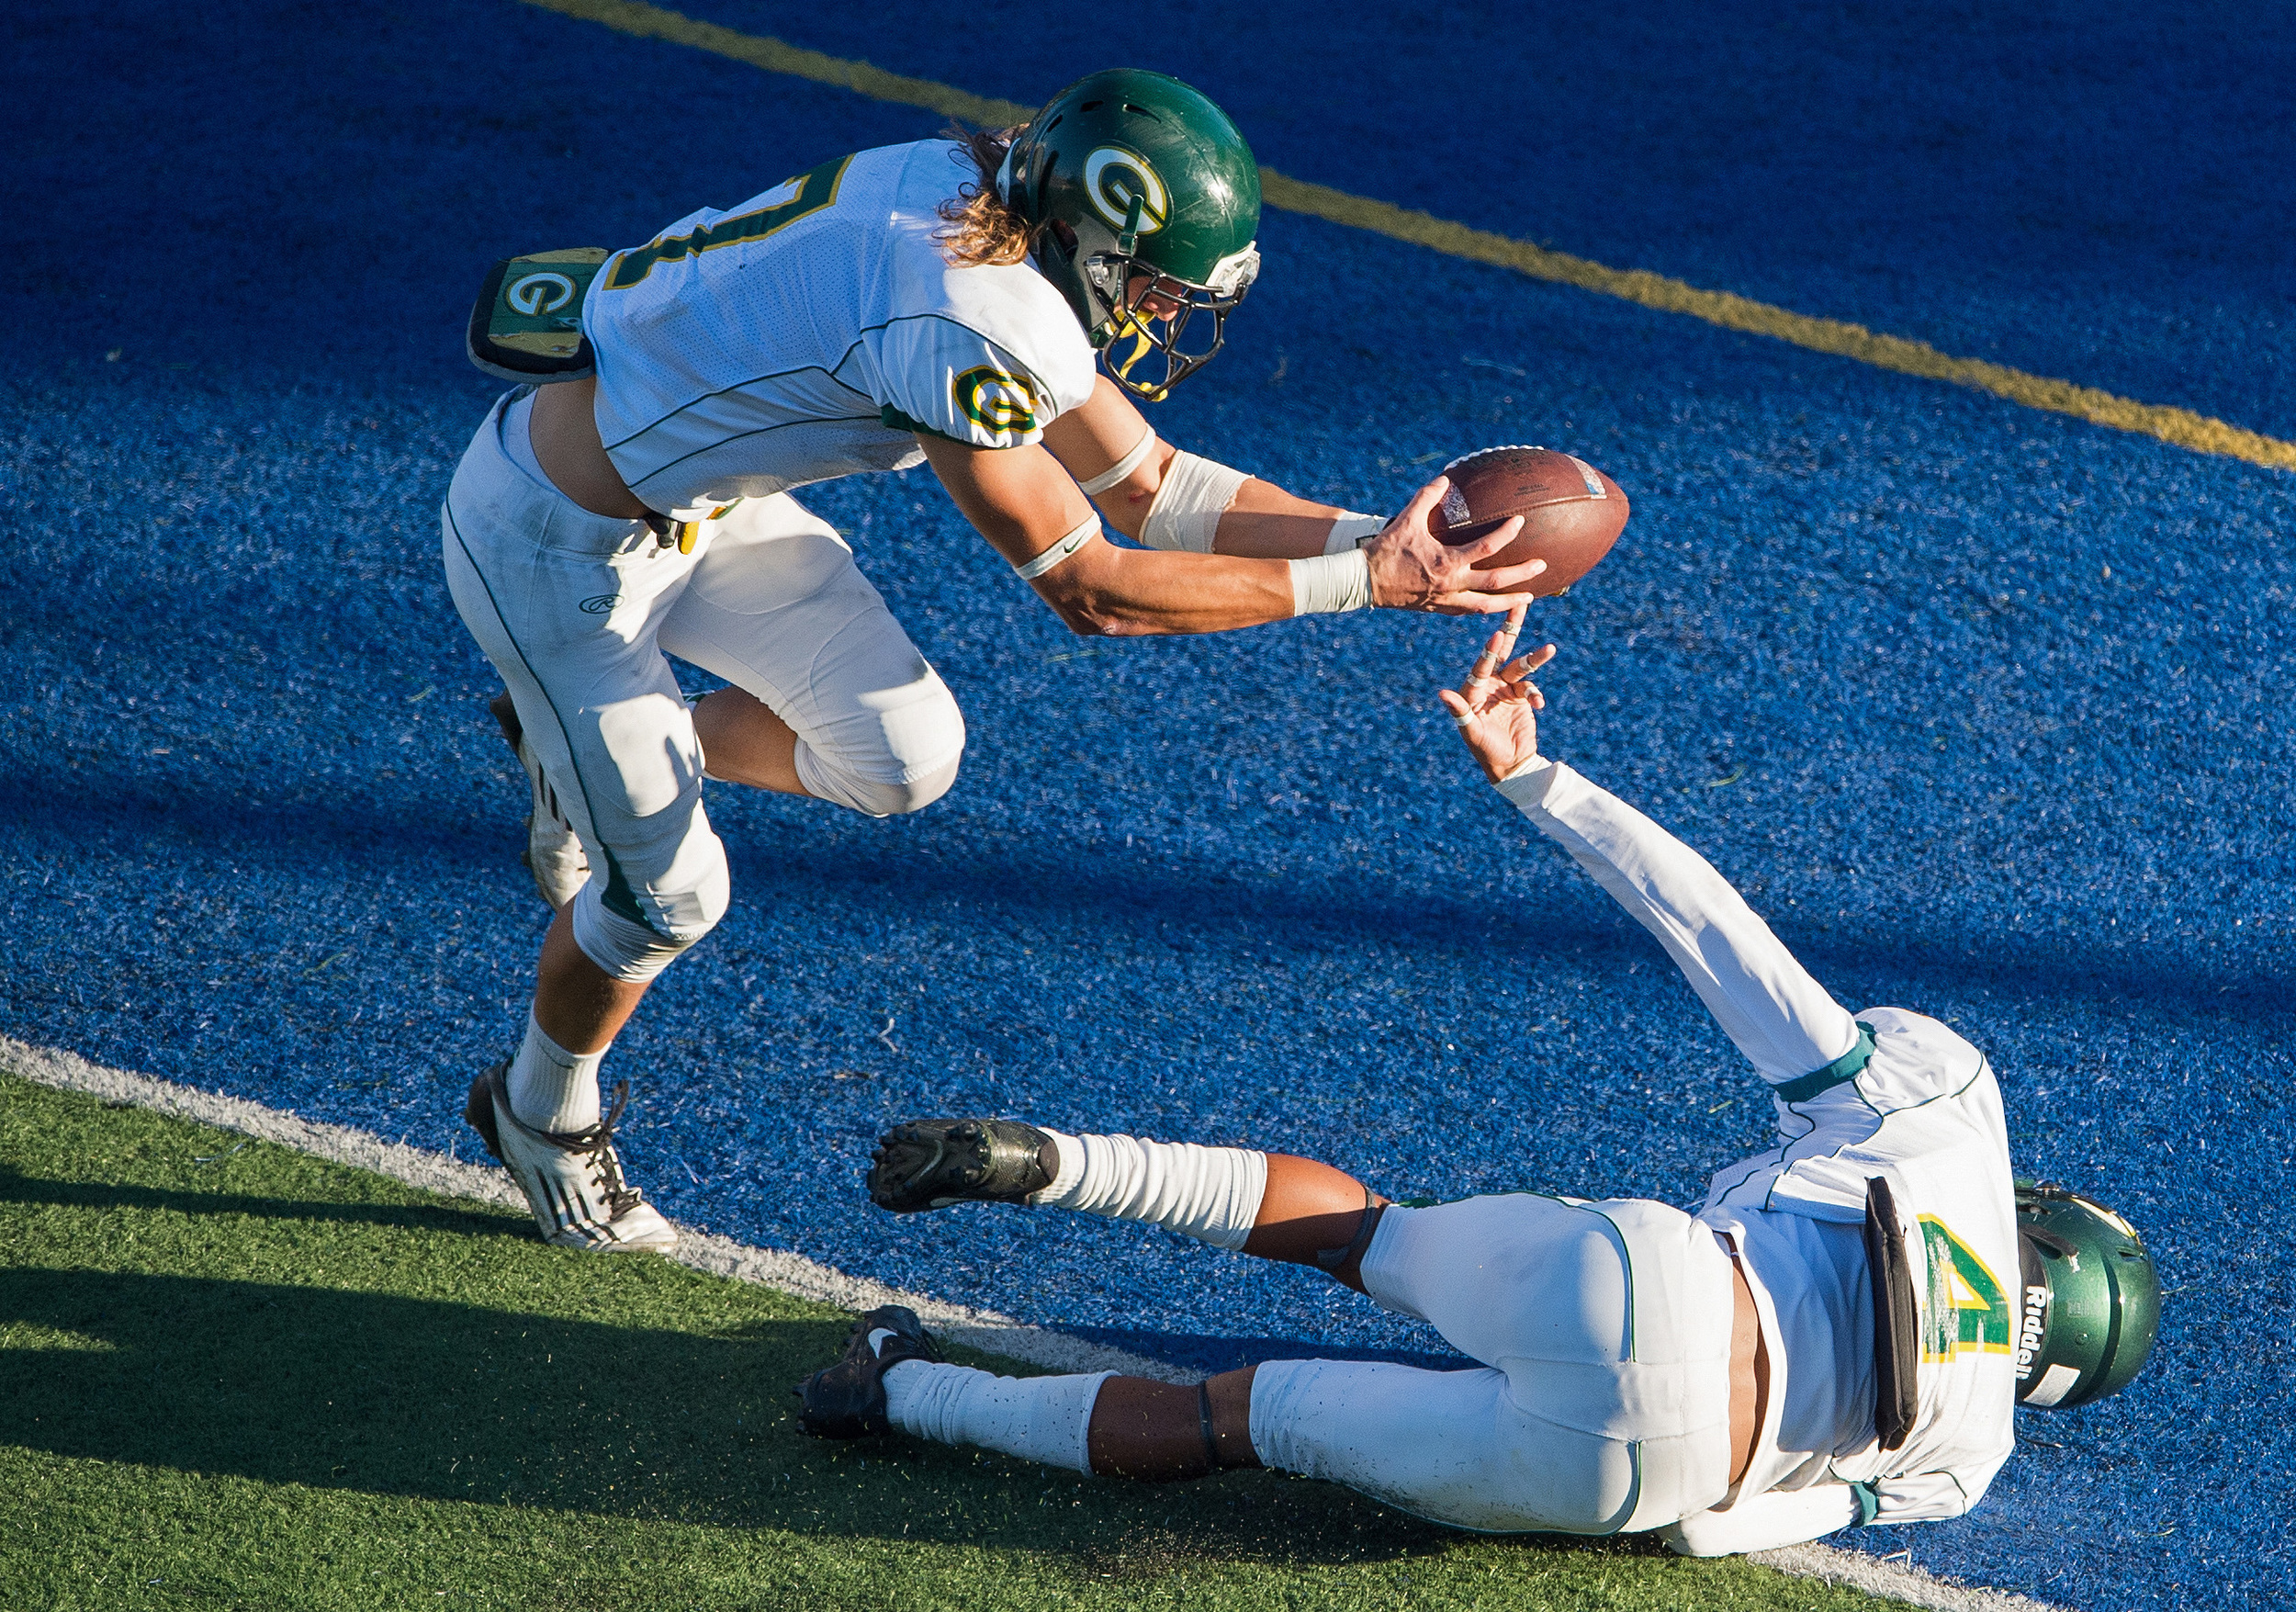 Grossmont Griffins wide receiver Christopher Lachance (7) and defensive back Brandon Payne (4) are unable to keep a punt out of the end zone during the second half of a game against the Santa Ana Dons at Santa Ana Stadium.